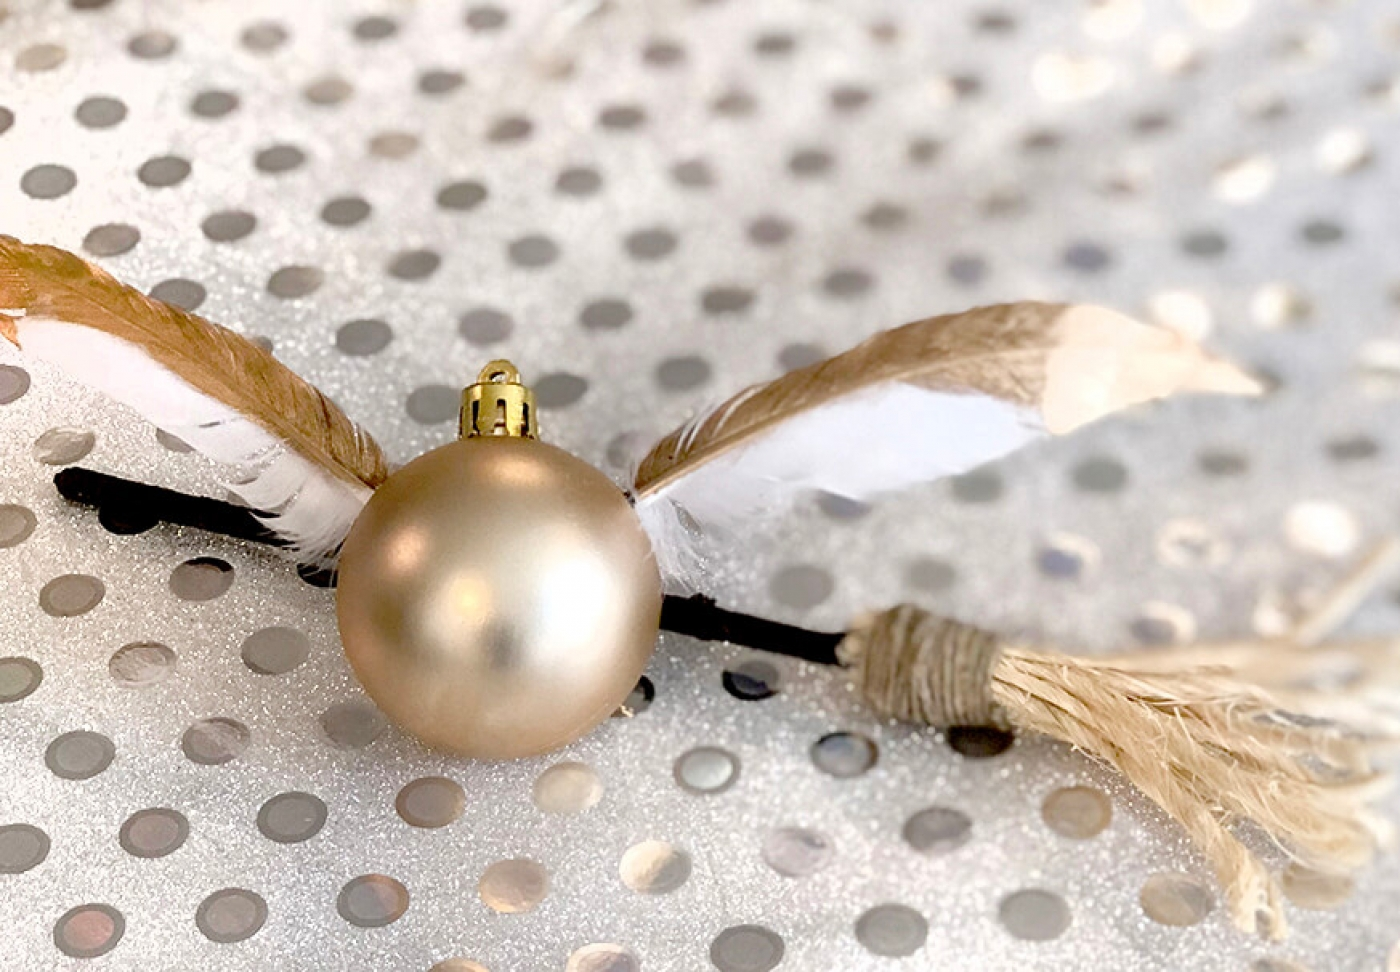 Golden snitch ornament and broom